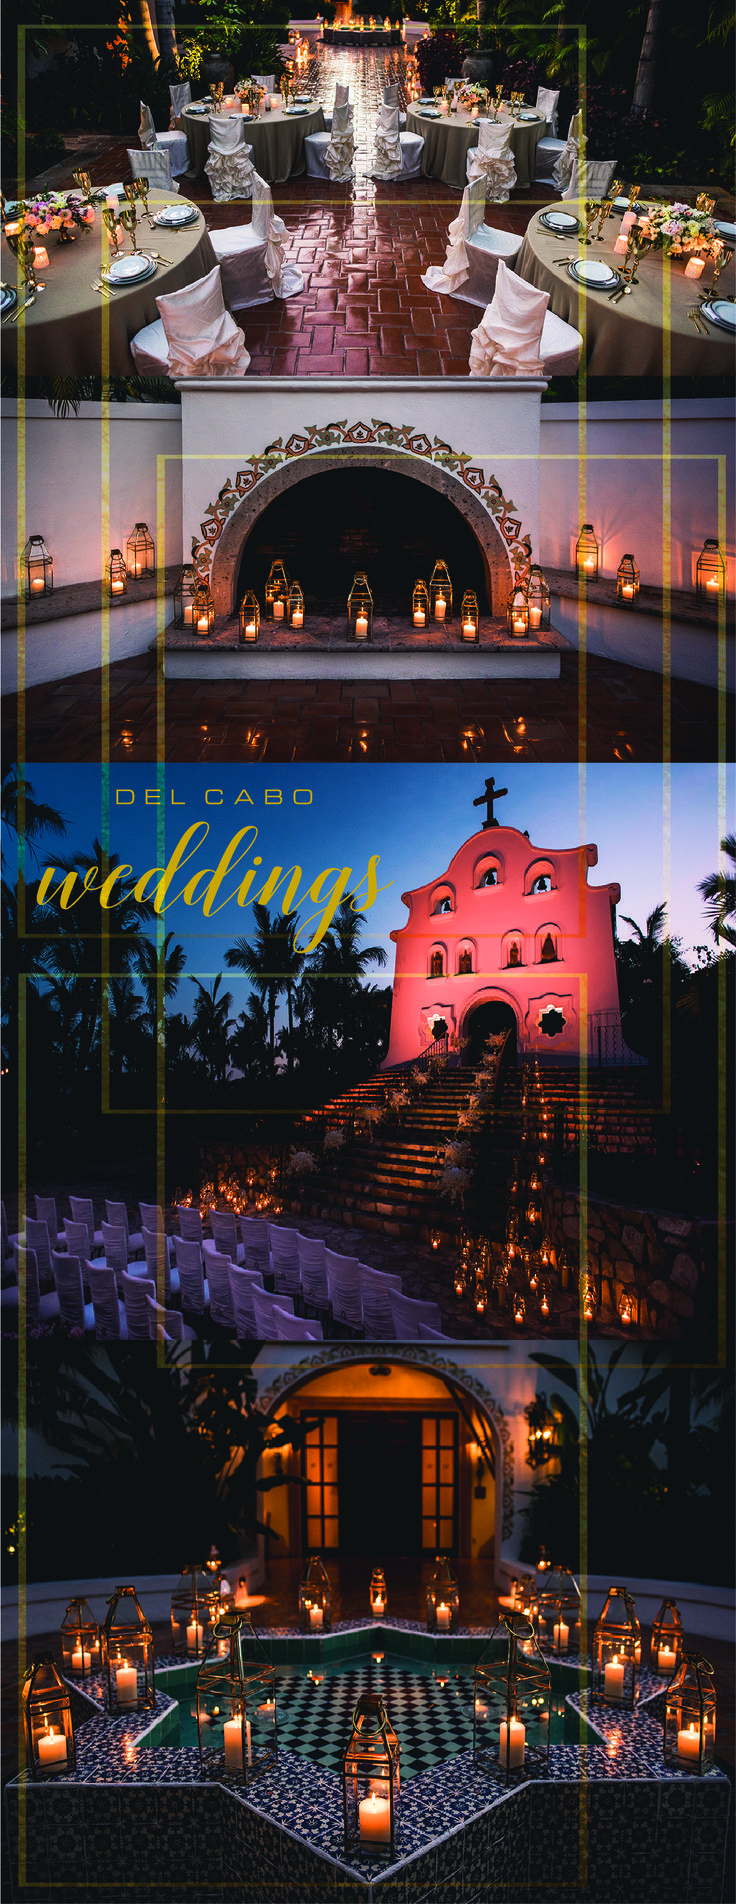 Looking for a wedding full of metals!? Del Cabo Weddings is a wedding destination firm that will make your dream come true! Don't forget to click on the image to visit our website!